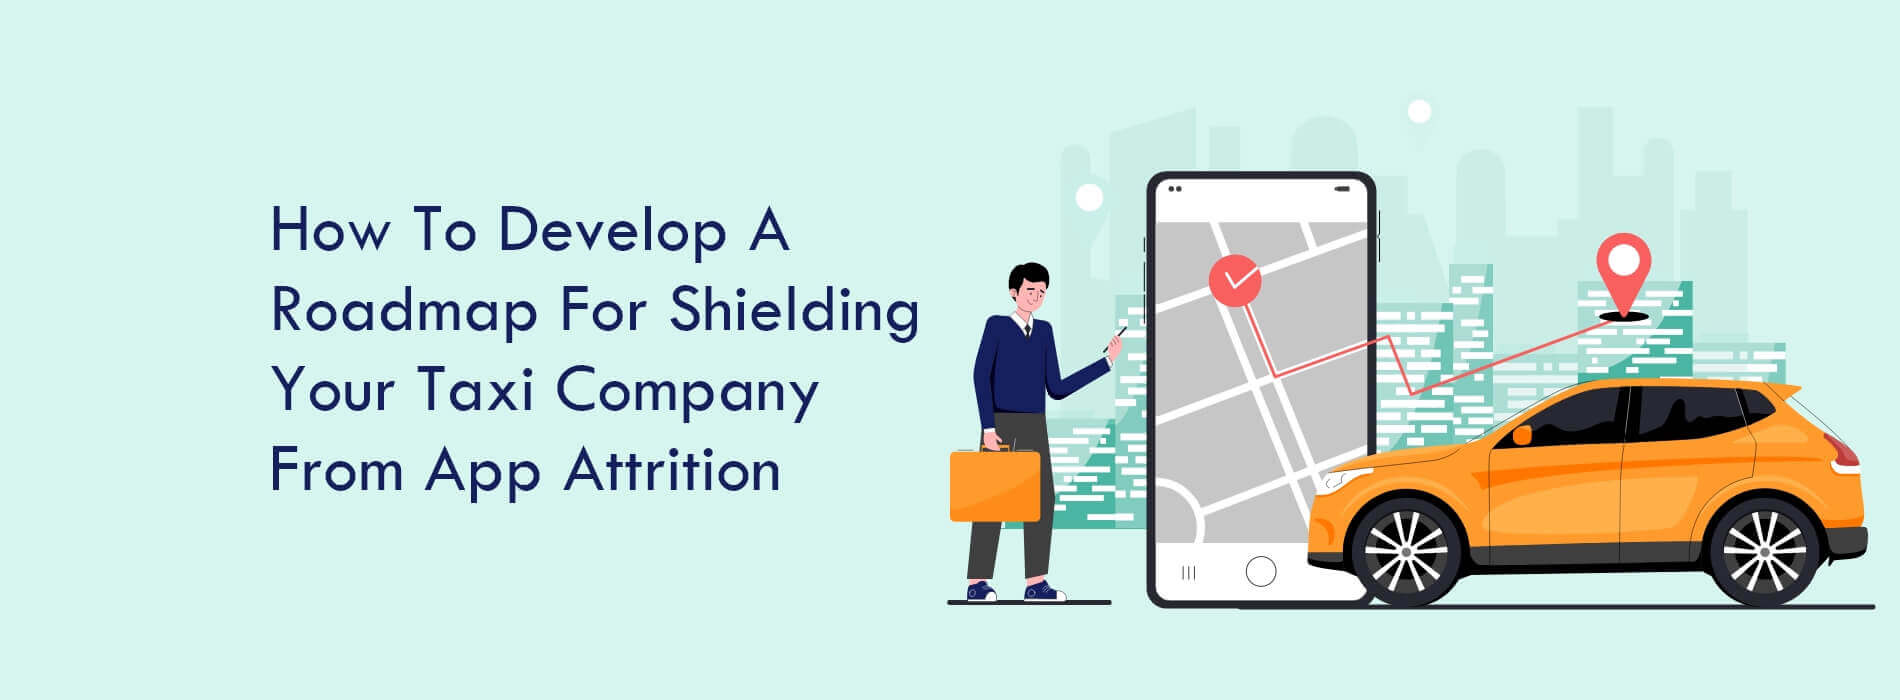 A Roadmap For Shielding Your Taxi Company From App Attrition